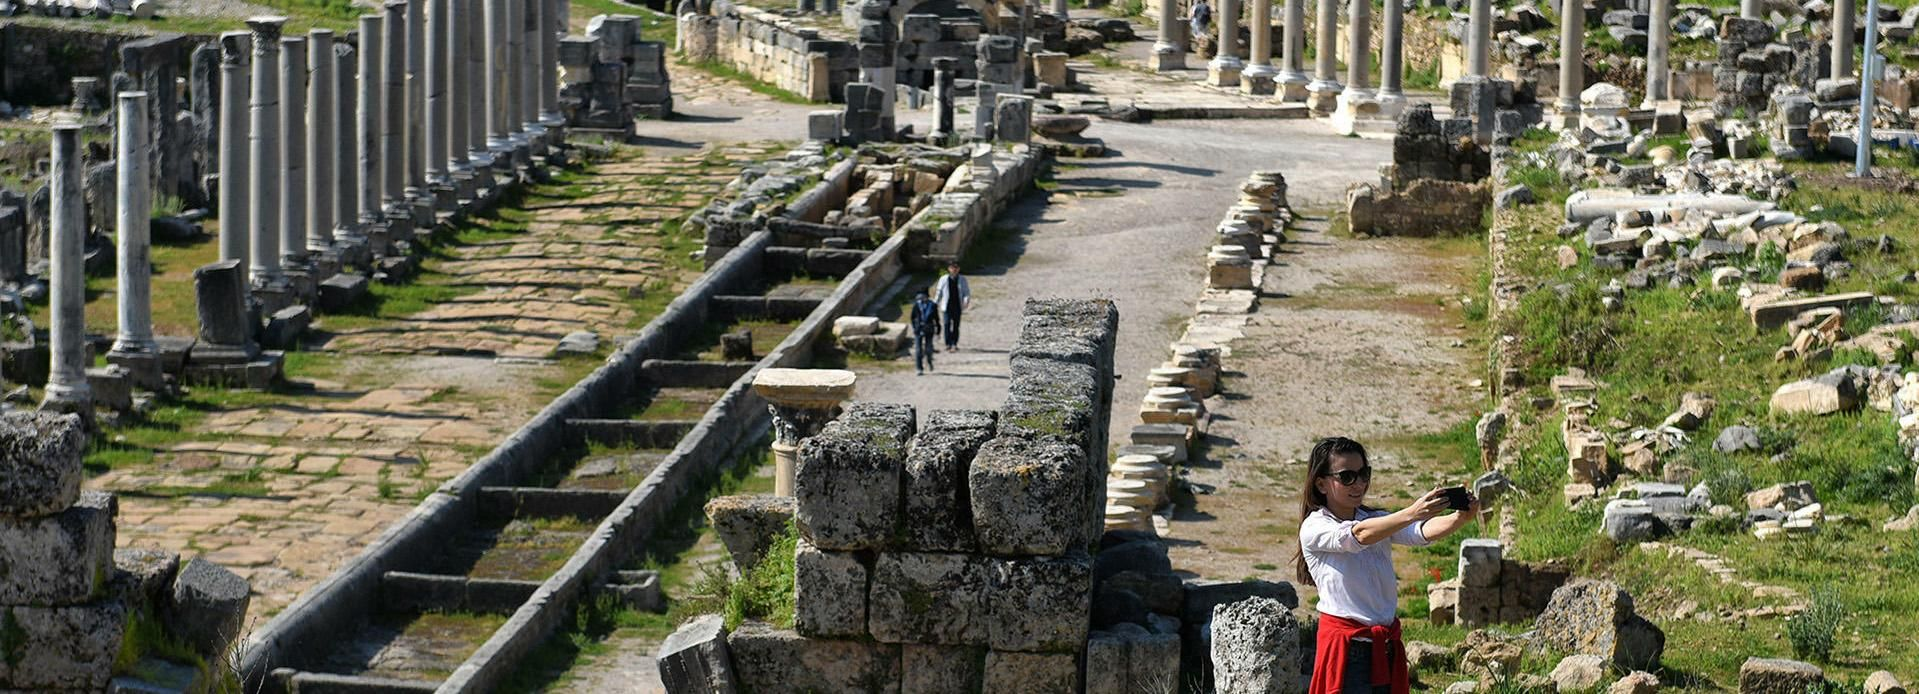 Perge, Aspendos & Side Full-Day Tour from Antalya